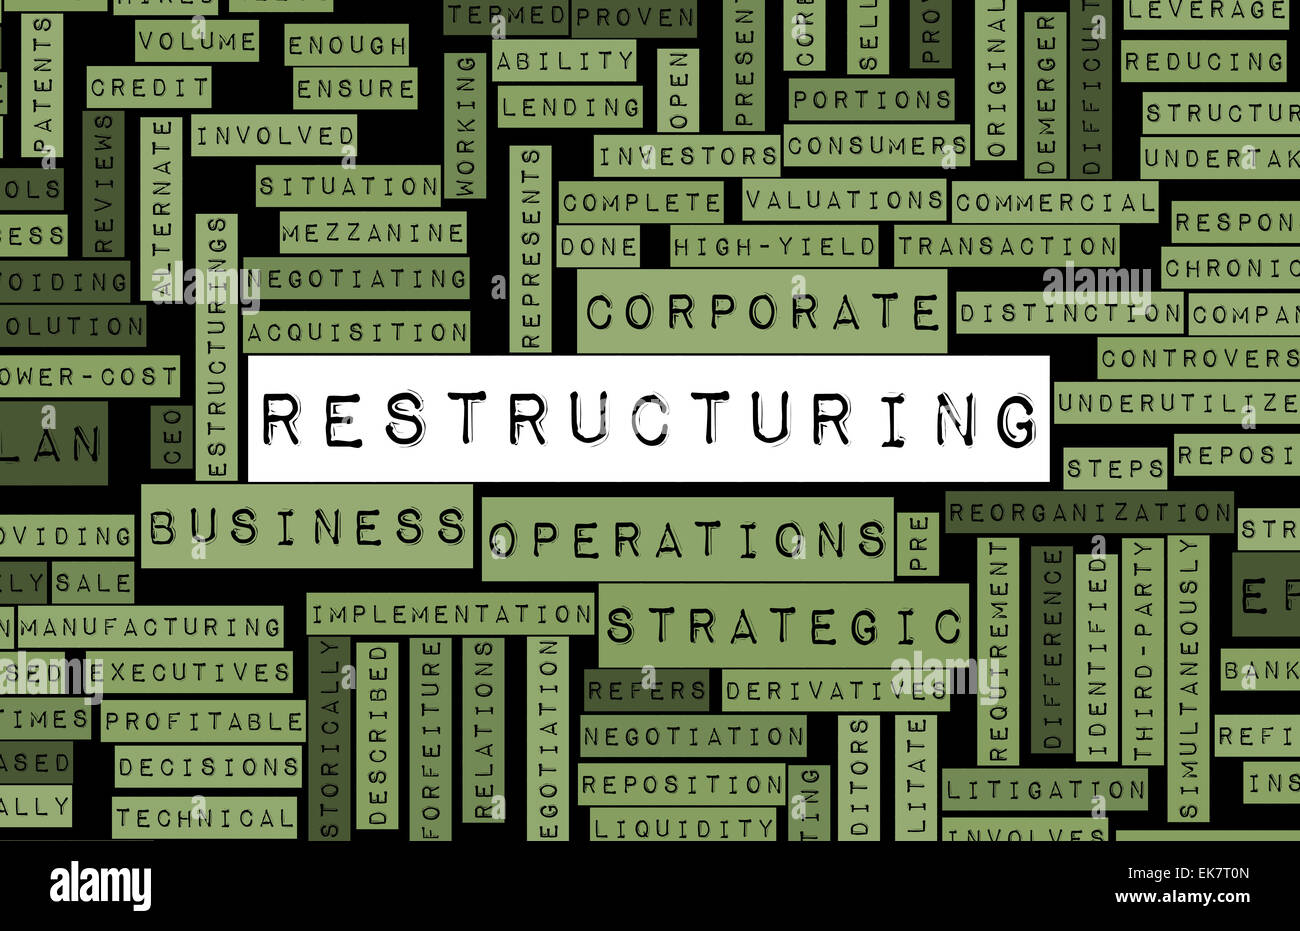 Restructuring Stock Photo